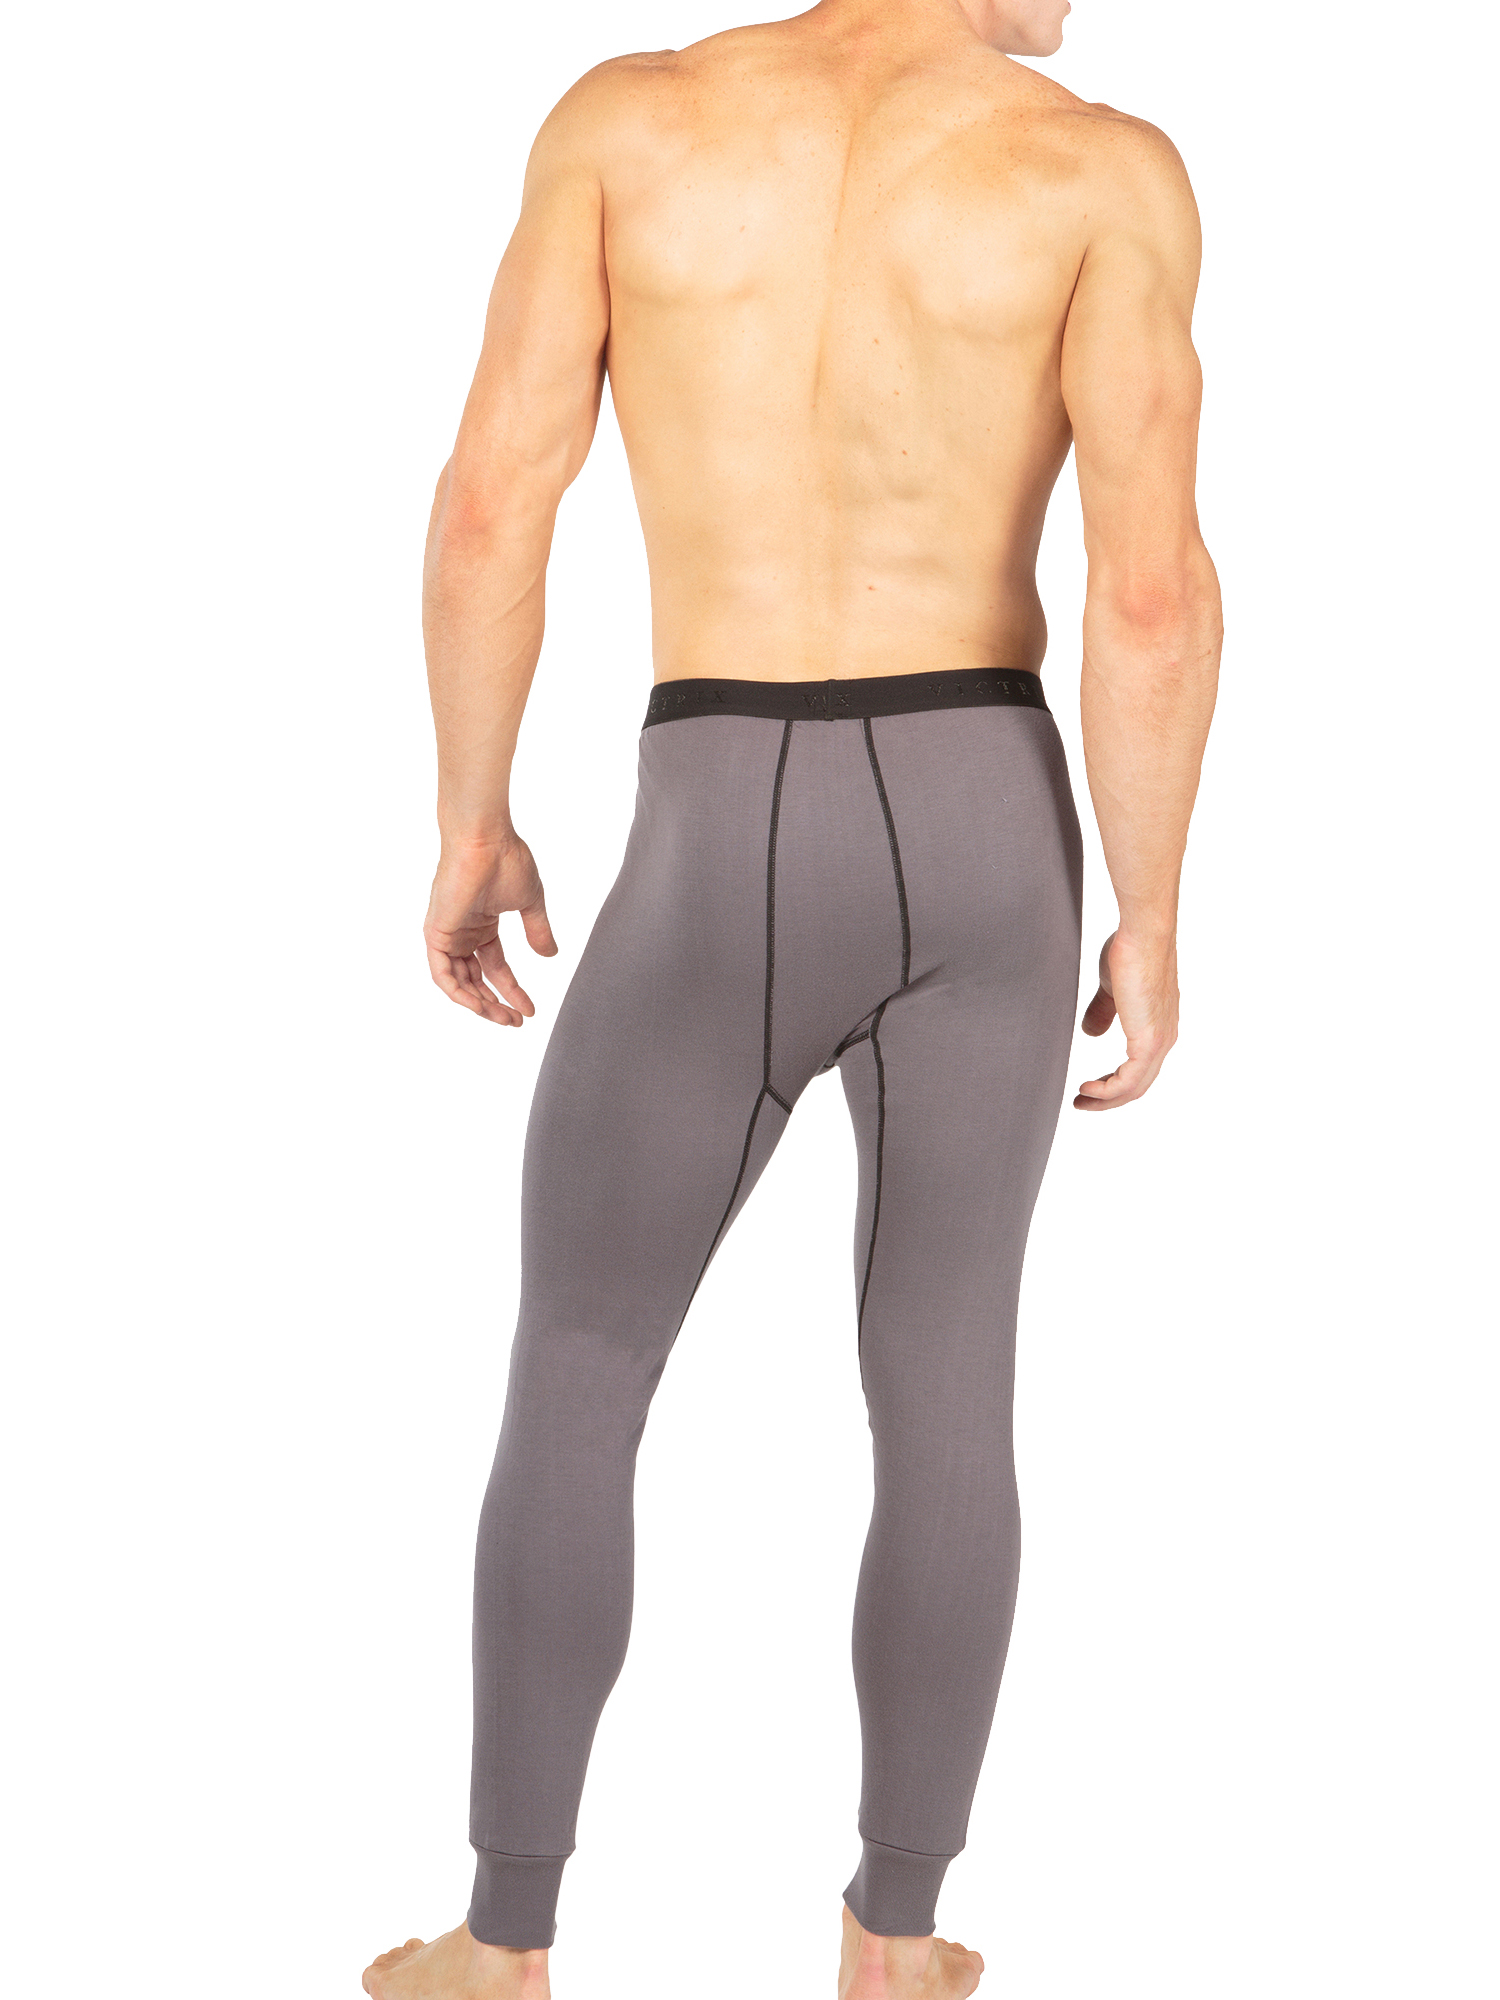 Men-039-s-Thermal-Underwear-Long-John-Pants-Luxury-Base-Layer-Thermals-for-Men miniatuur 9